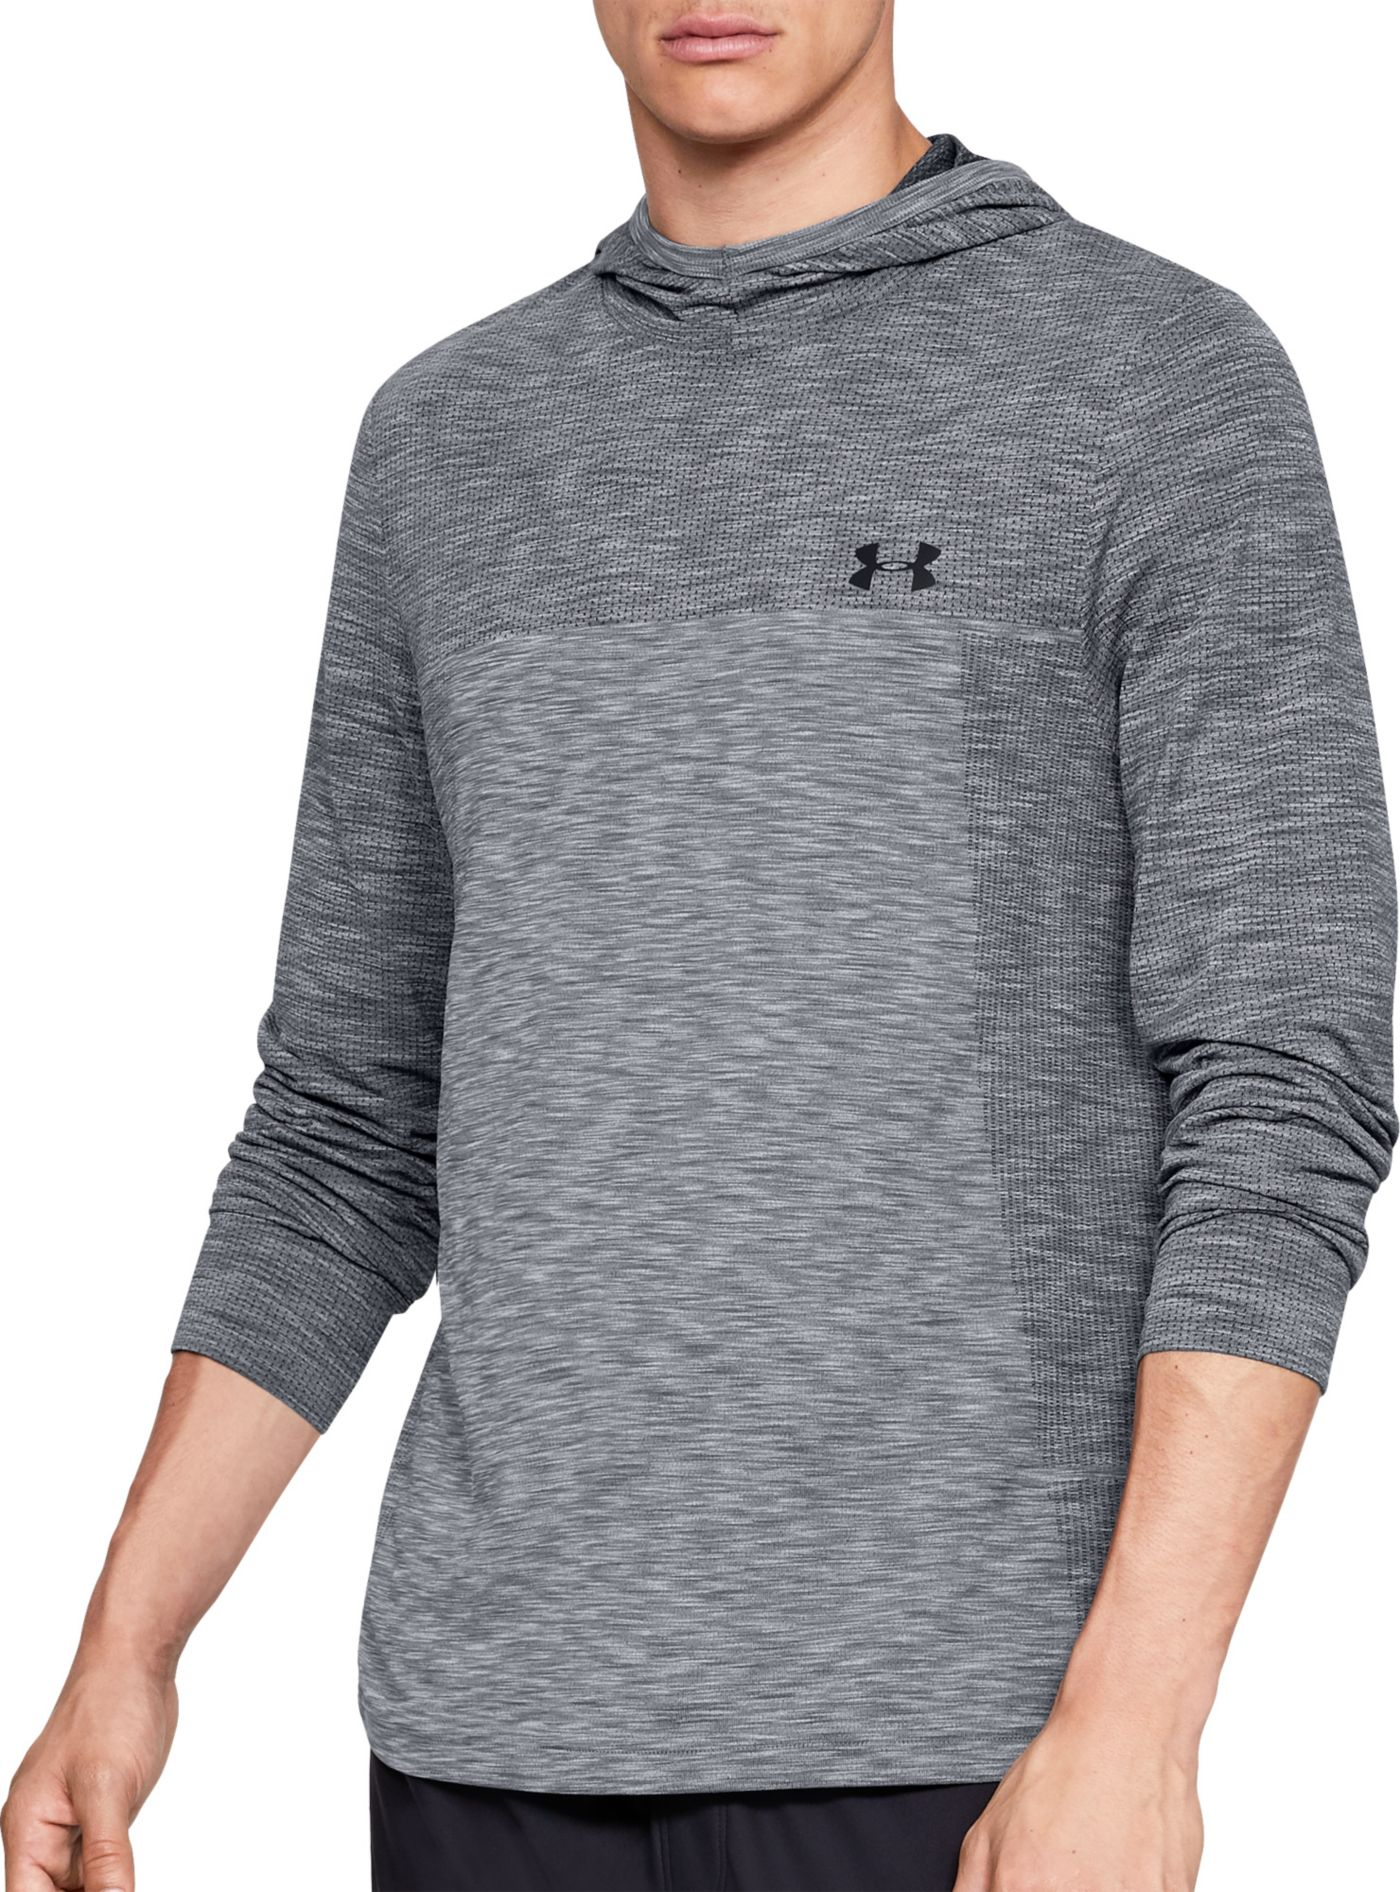 Under Armour Men's Vanish Seamless Hoodie